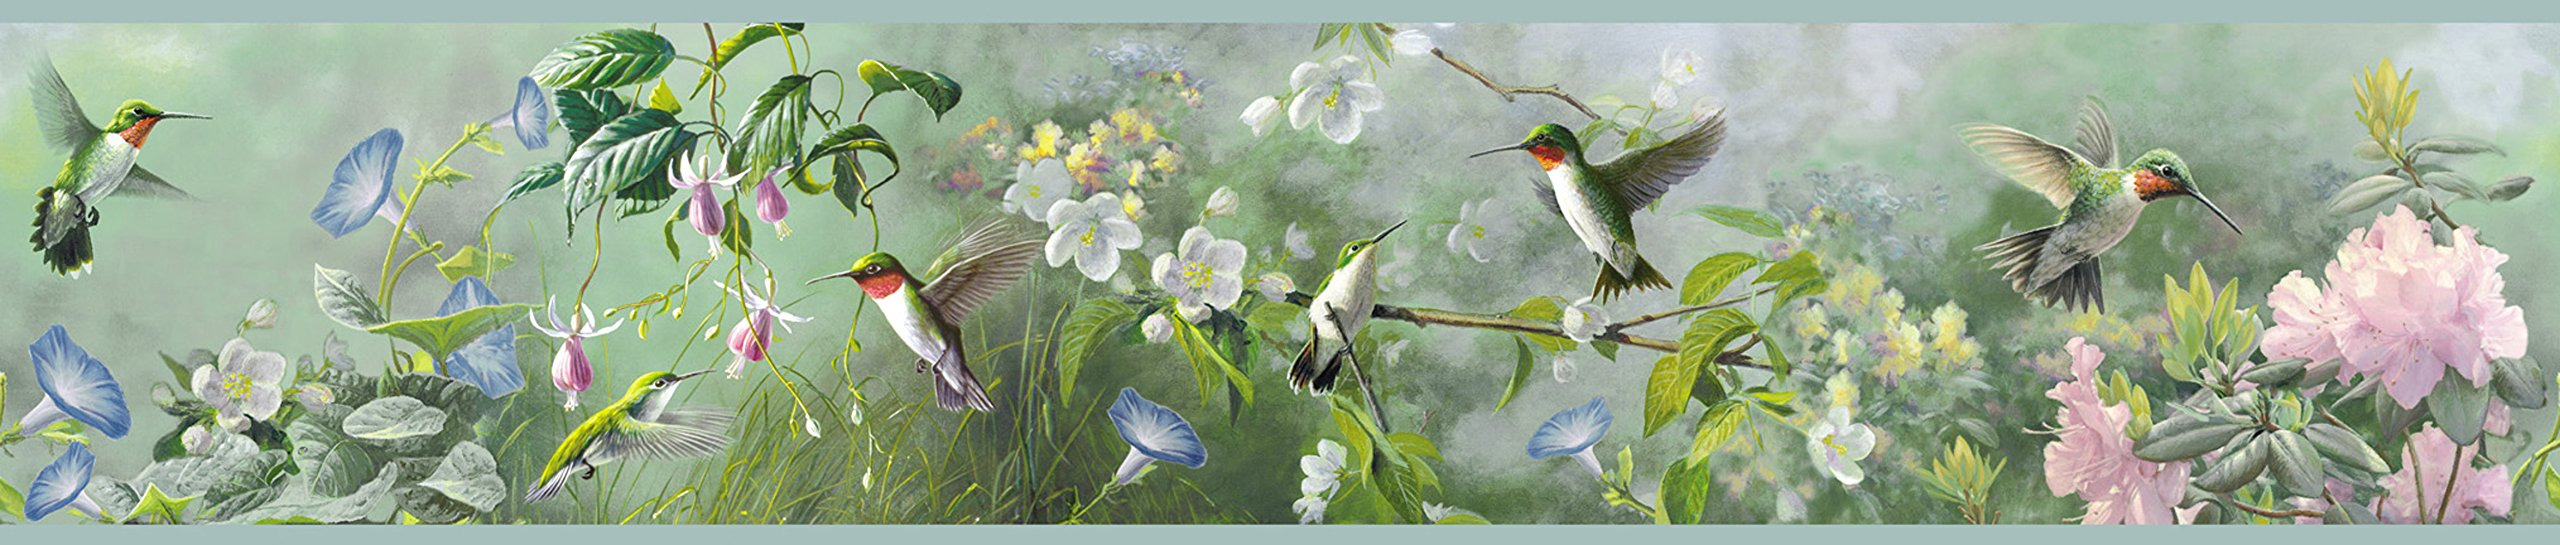 Chesapeake HTM48531B Ruby Green Hummingbird Garden Wallpaper Border